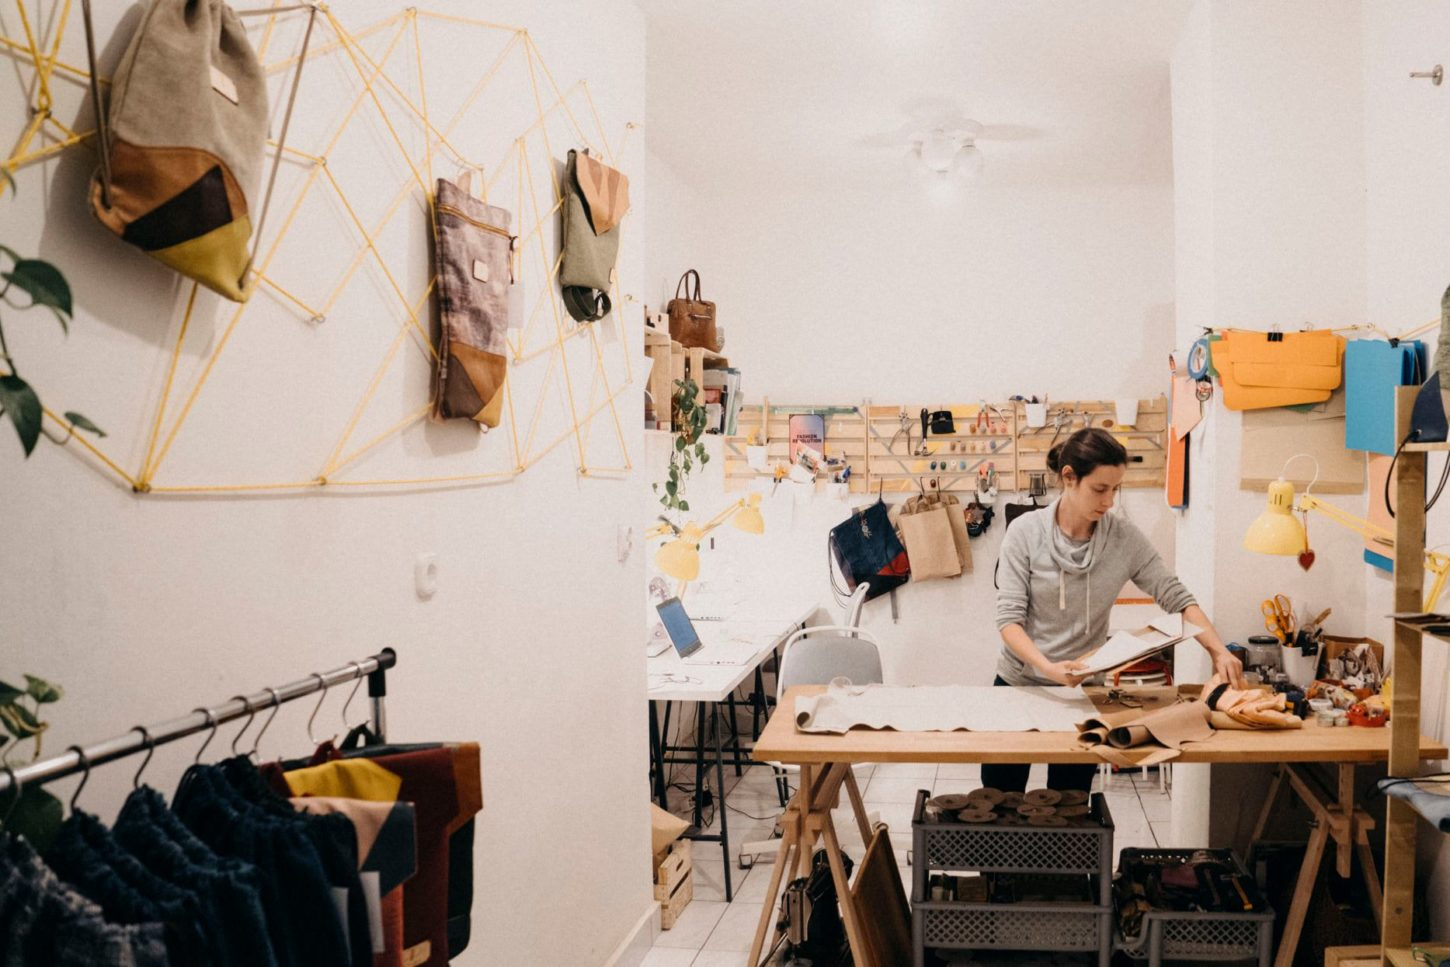 small boutique filled with design items